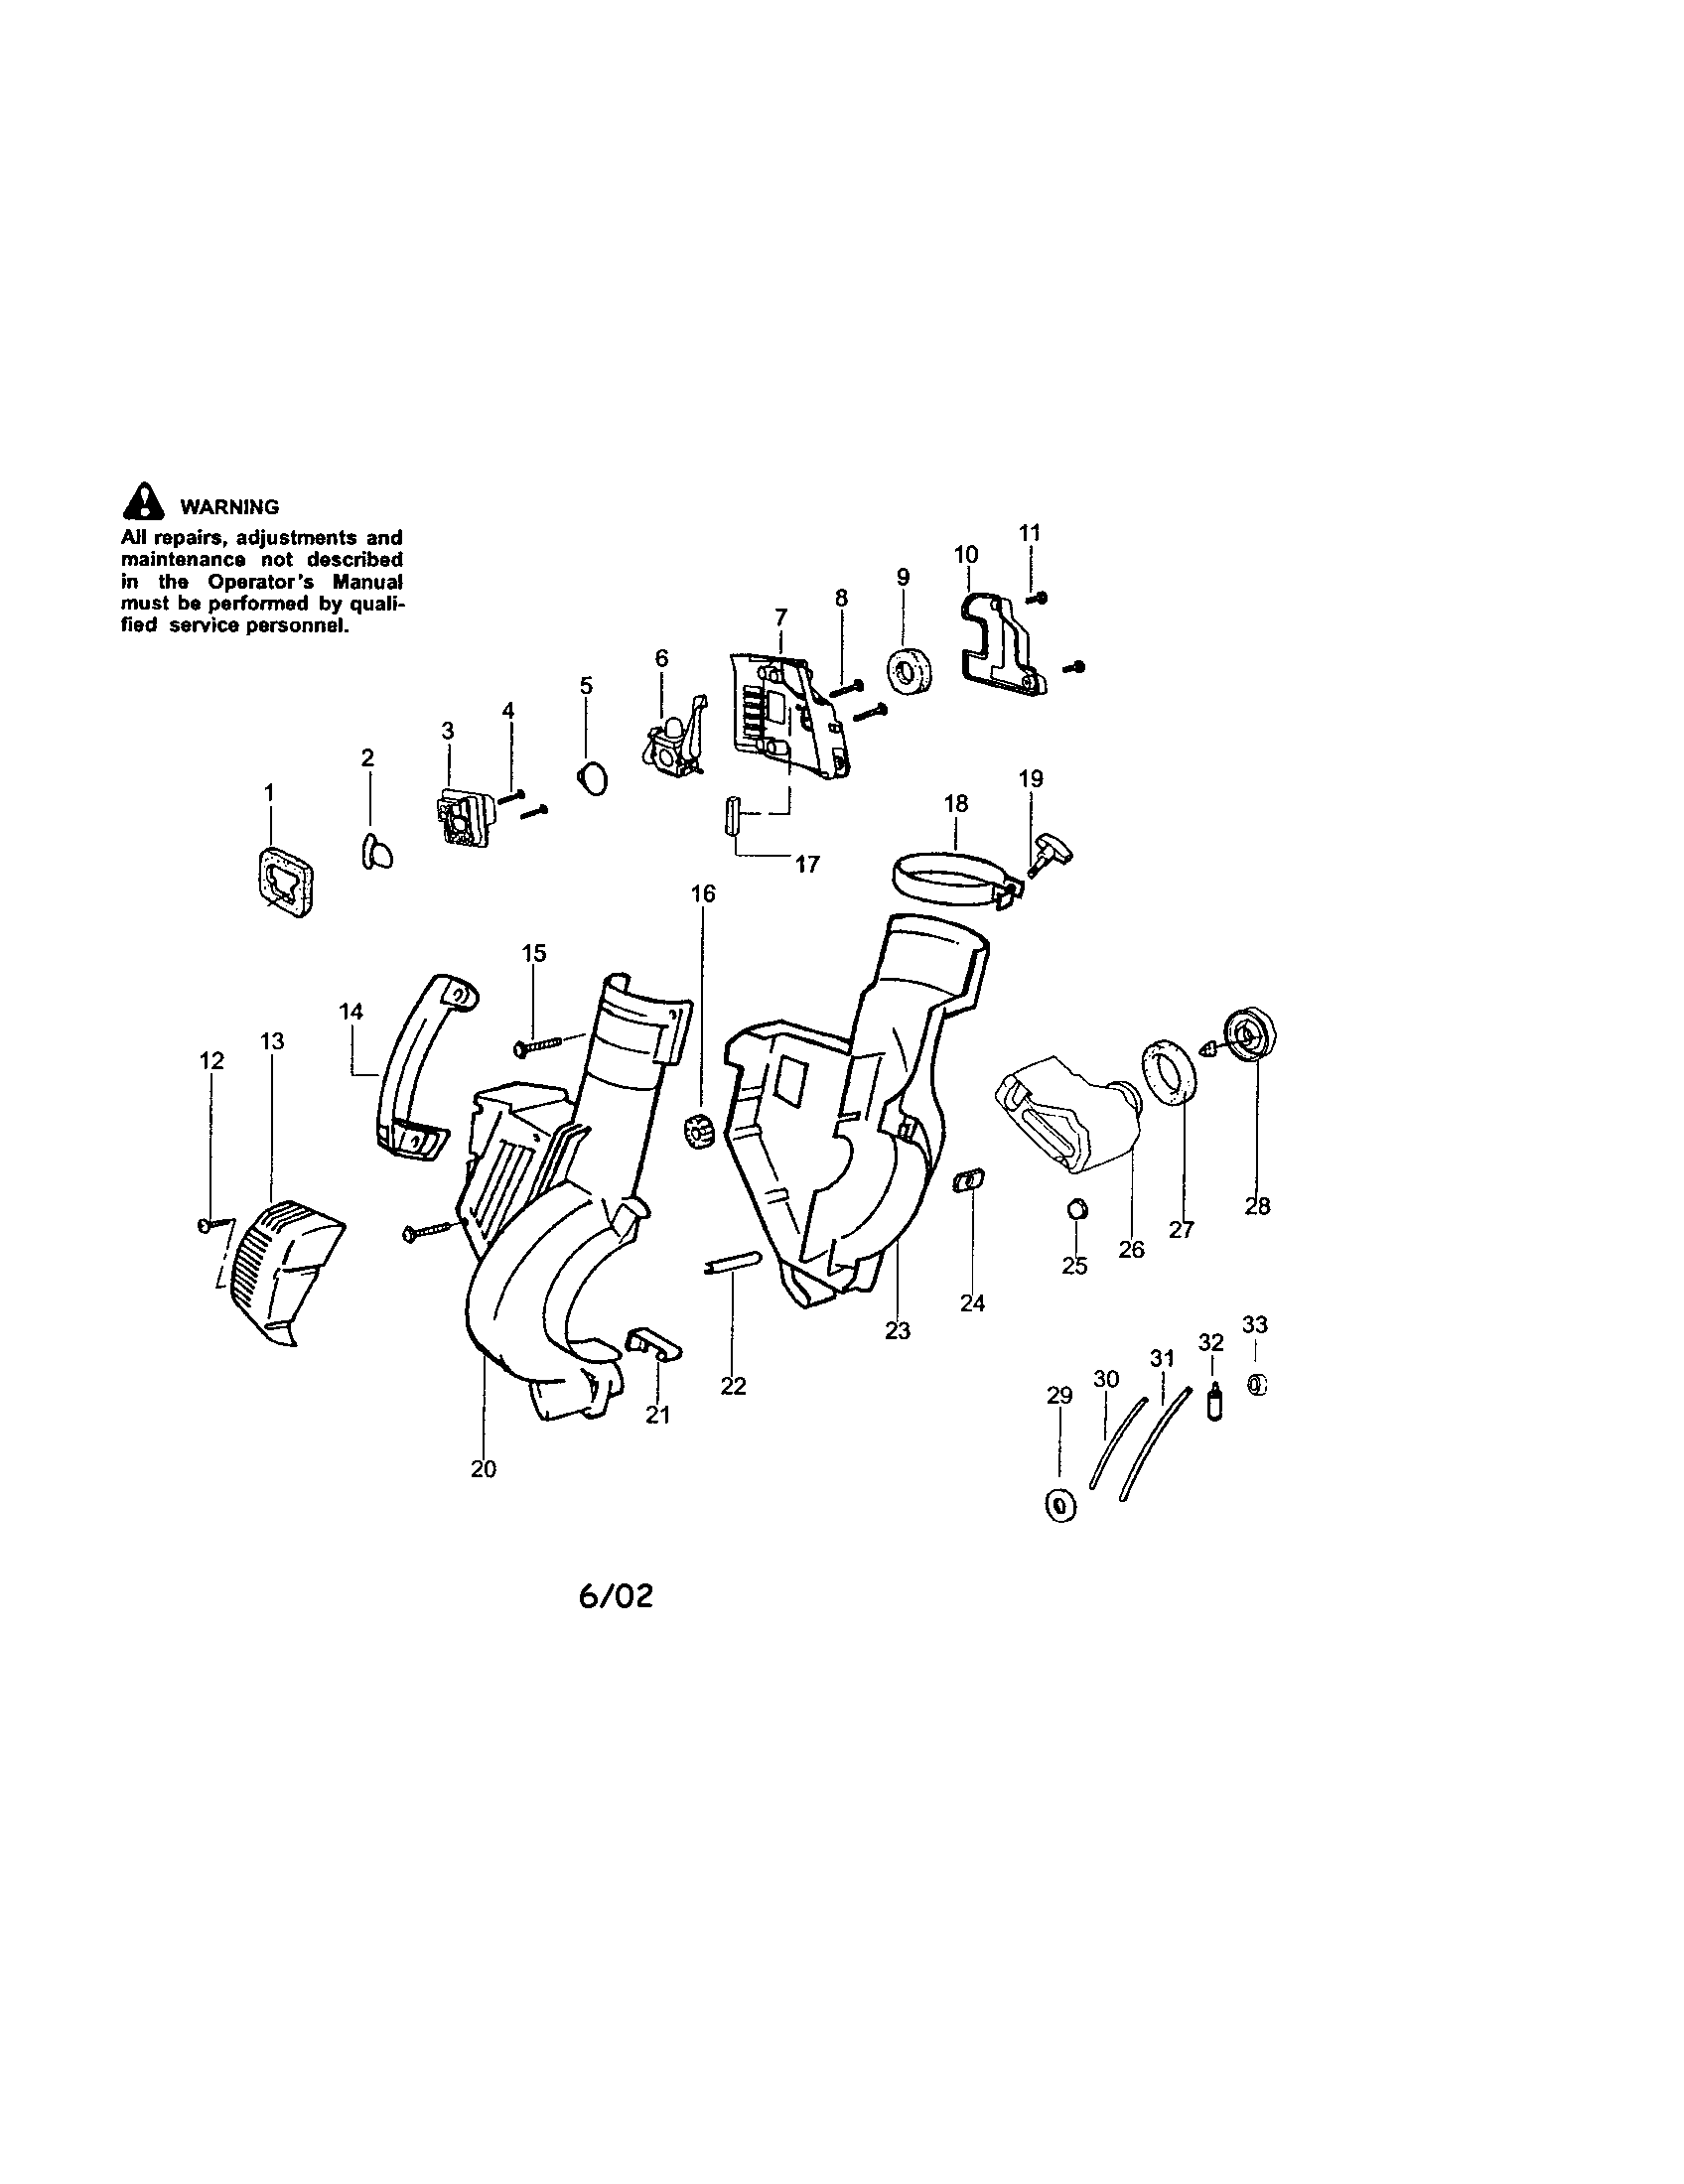 Fiat Coupe Heating And Ventilation System Wiring Diagram